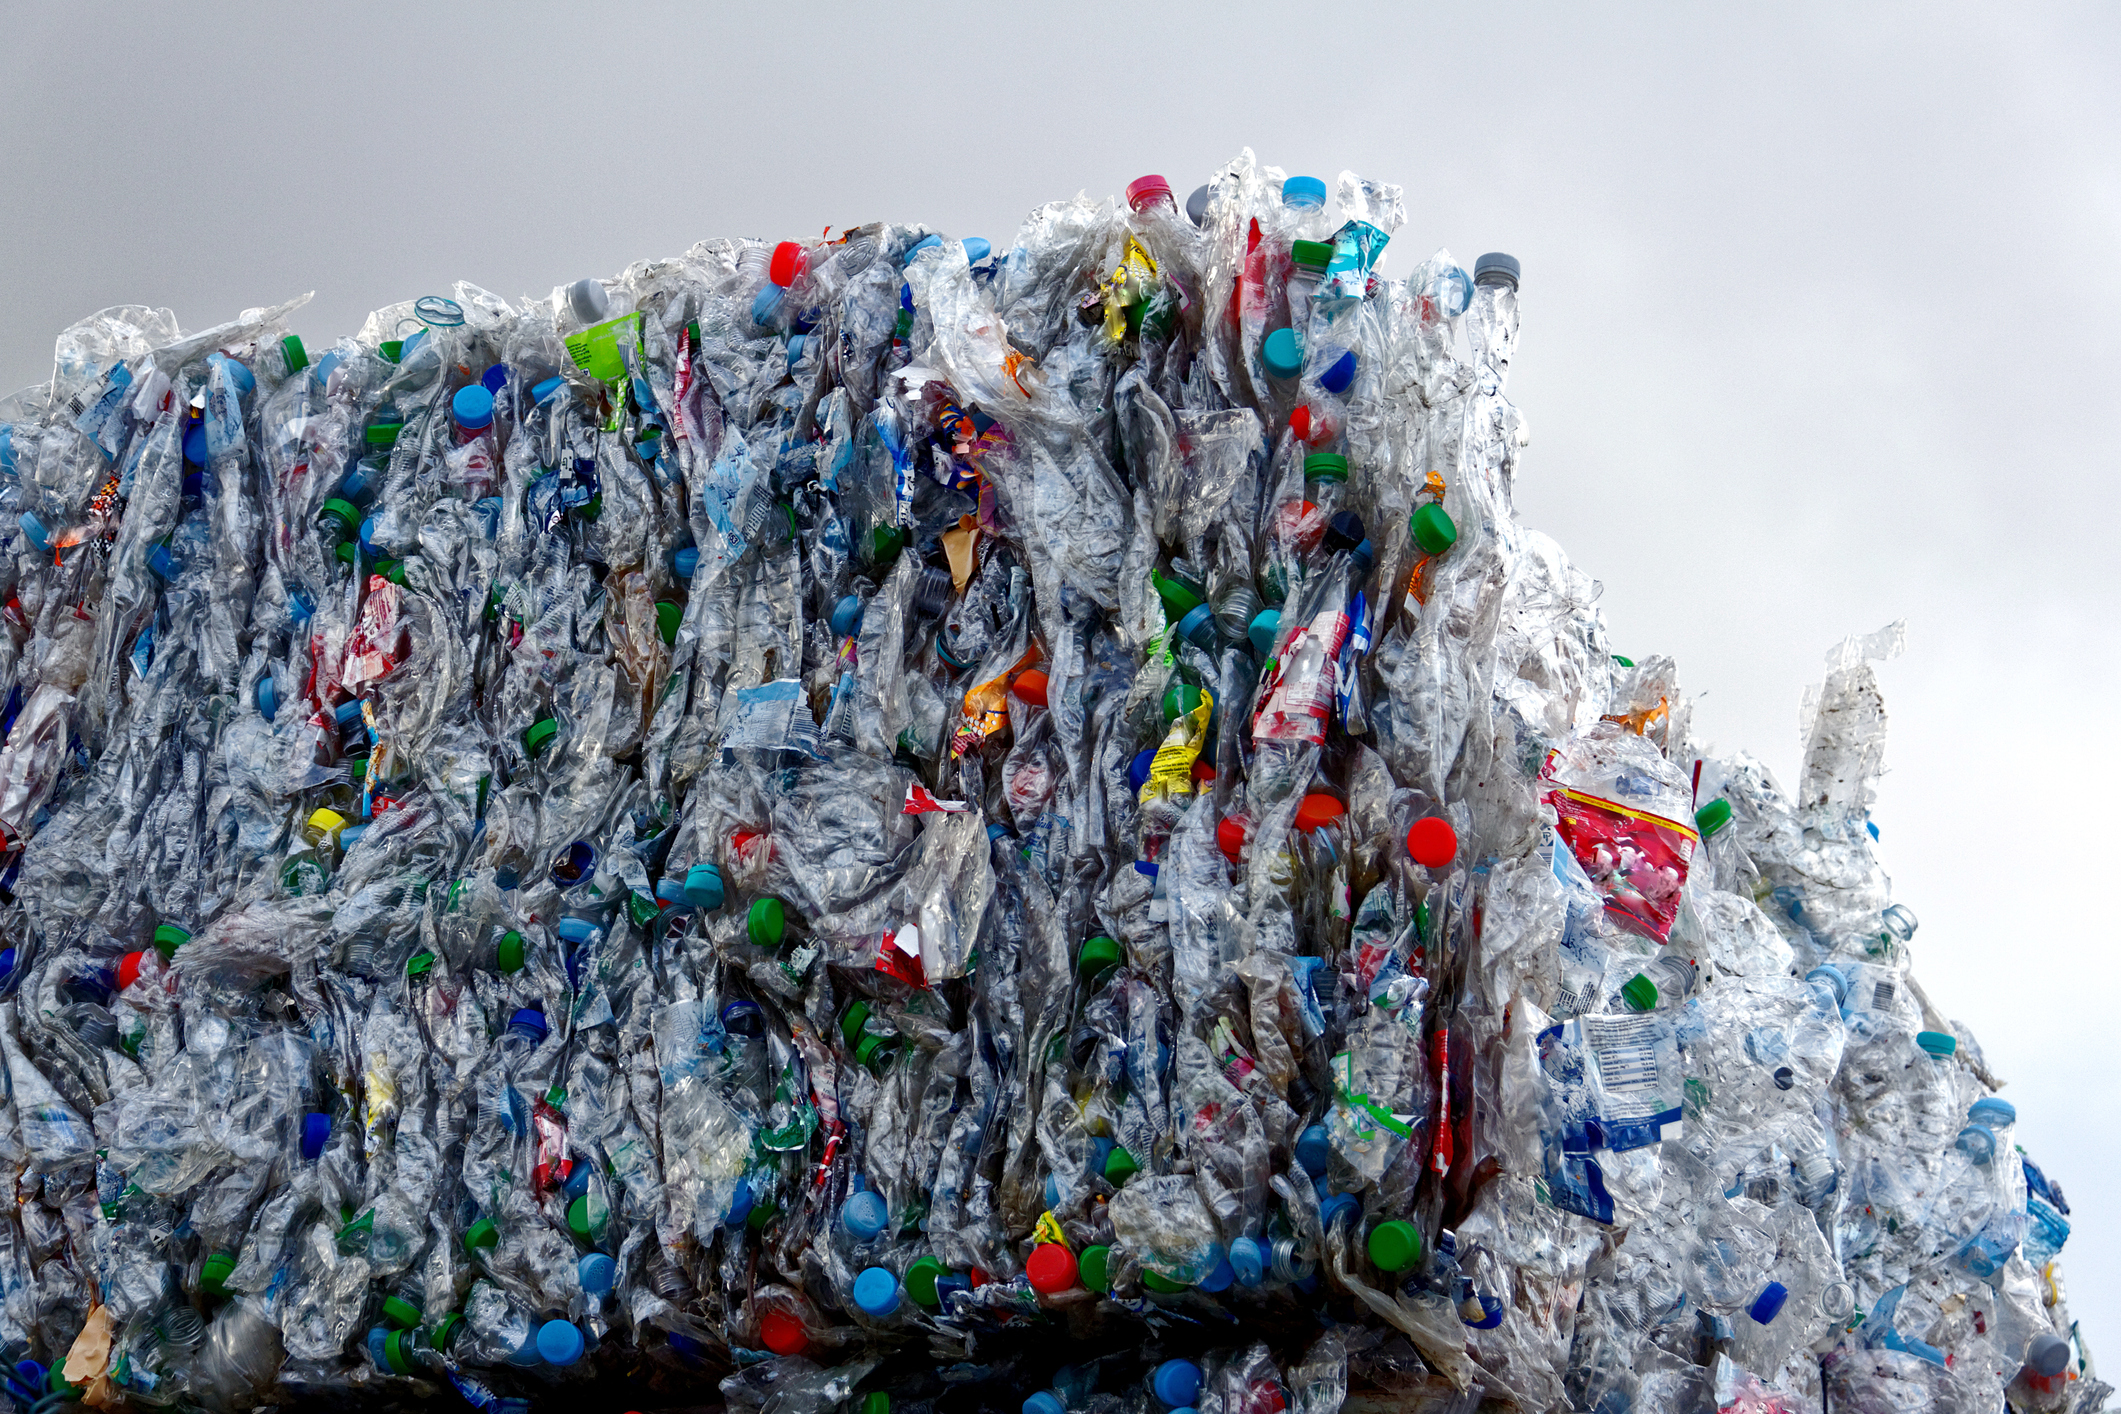 Trade Wars Could Make Global Plastic Problem Worse